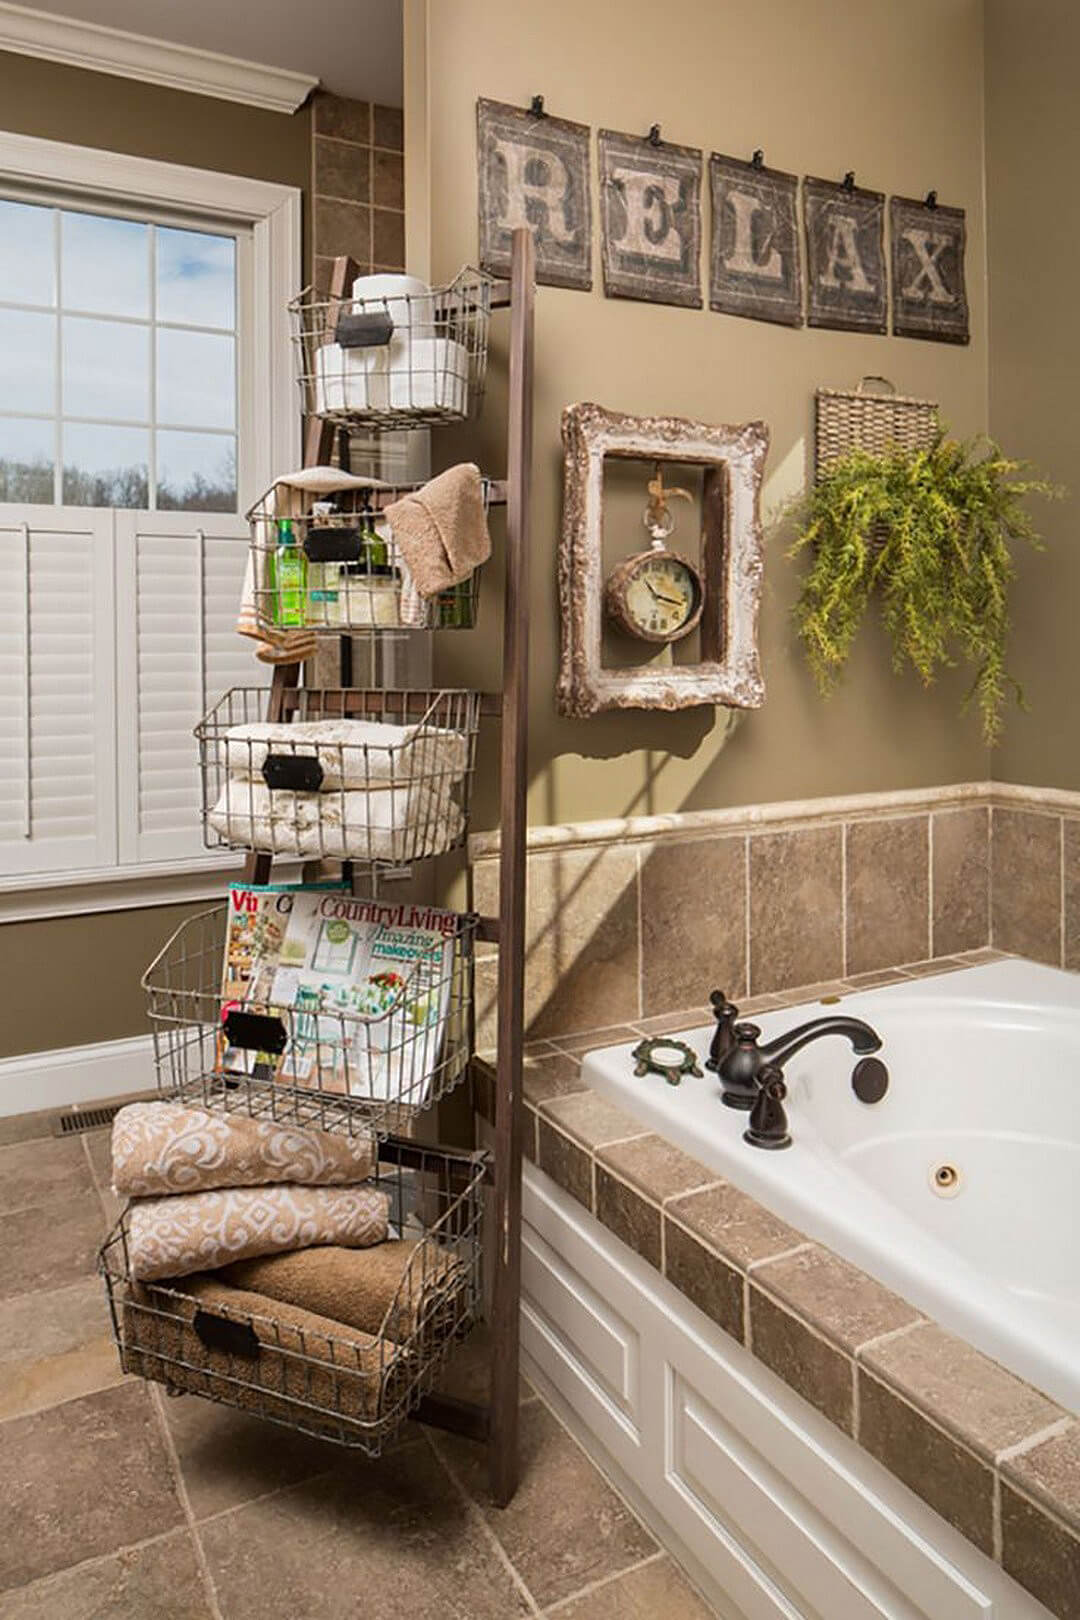 Newsstand Style Towel U0026 Toiletries Rack